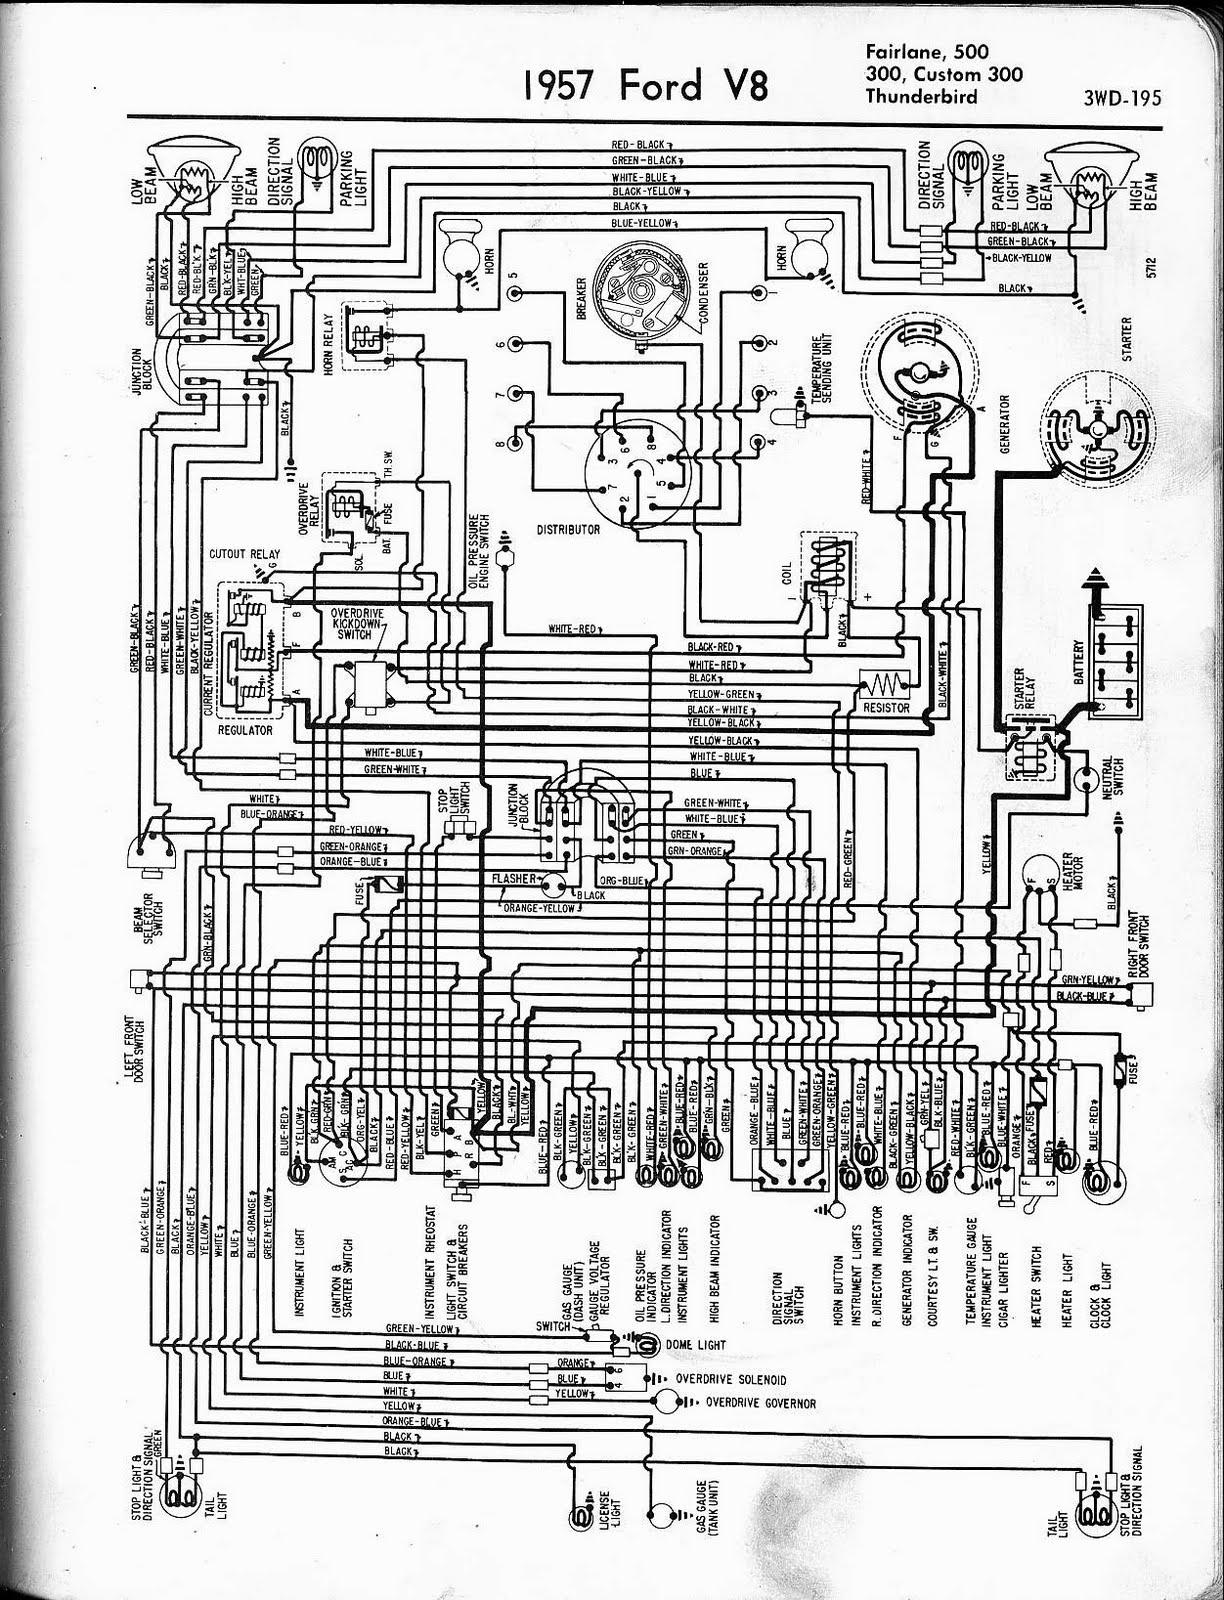 hight resolution of free auto wiring diagram 1957 ford v8 fairlane custom300